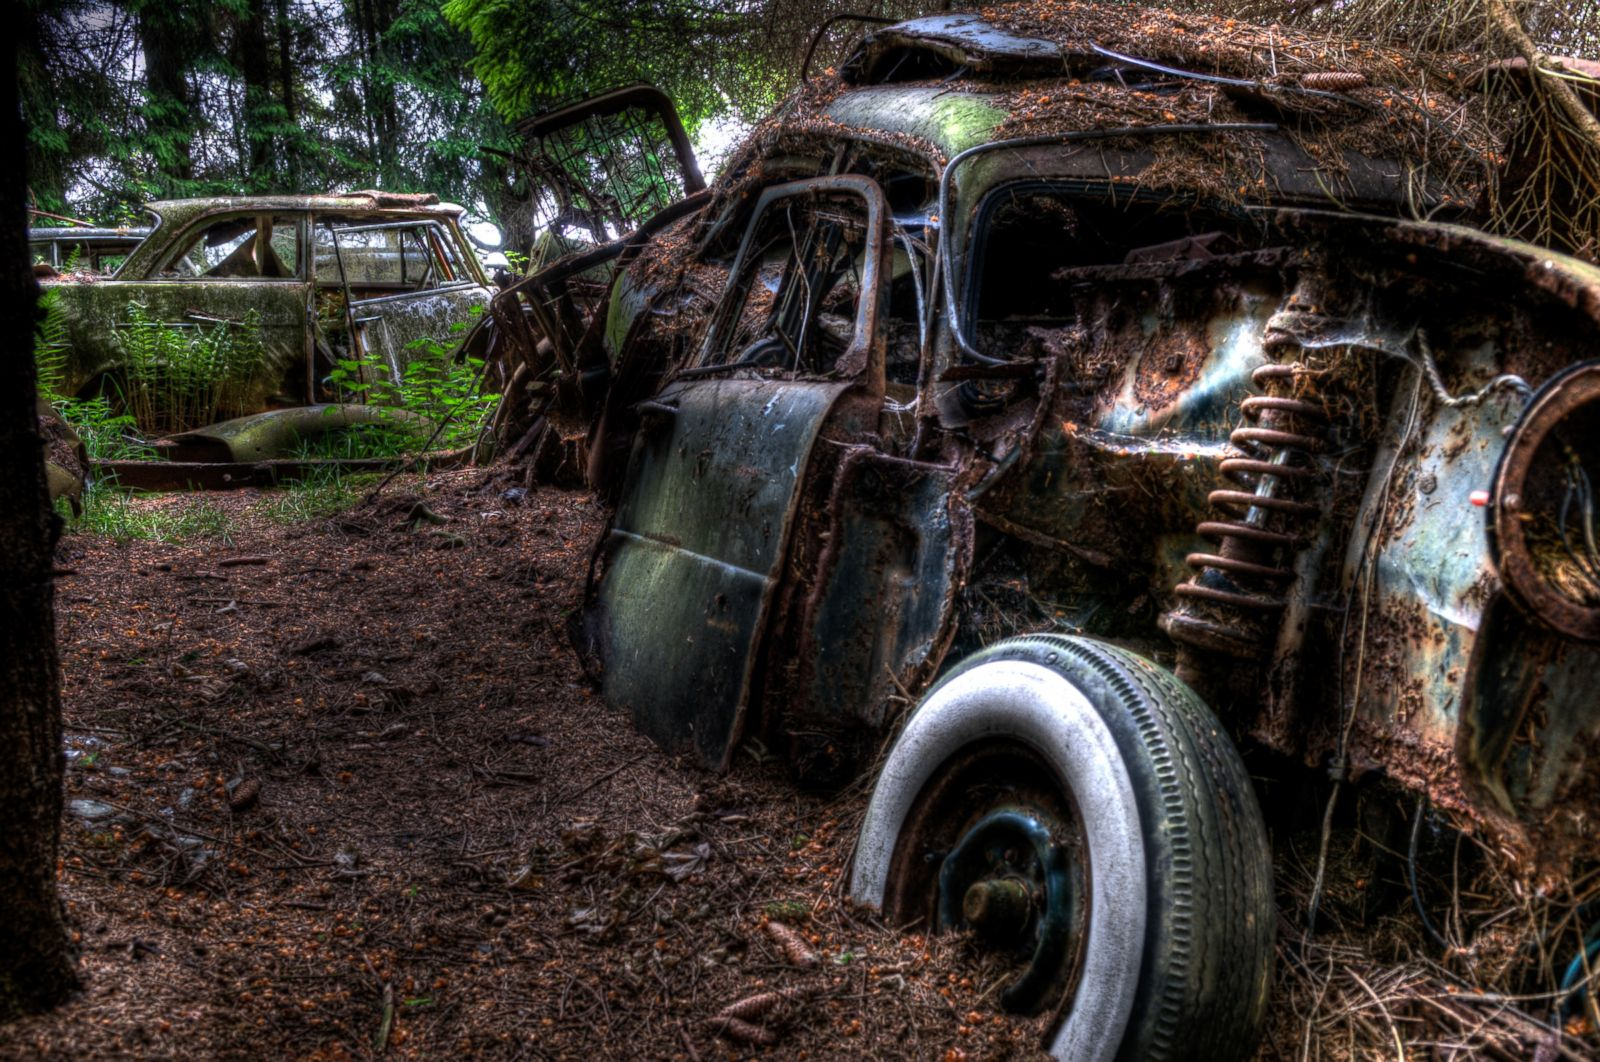 Forest Full of Abandoned Cars Photos - ABC News